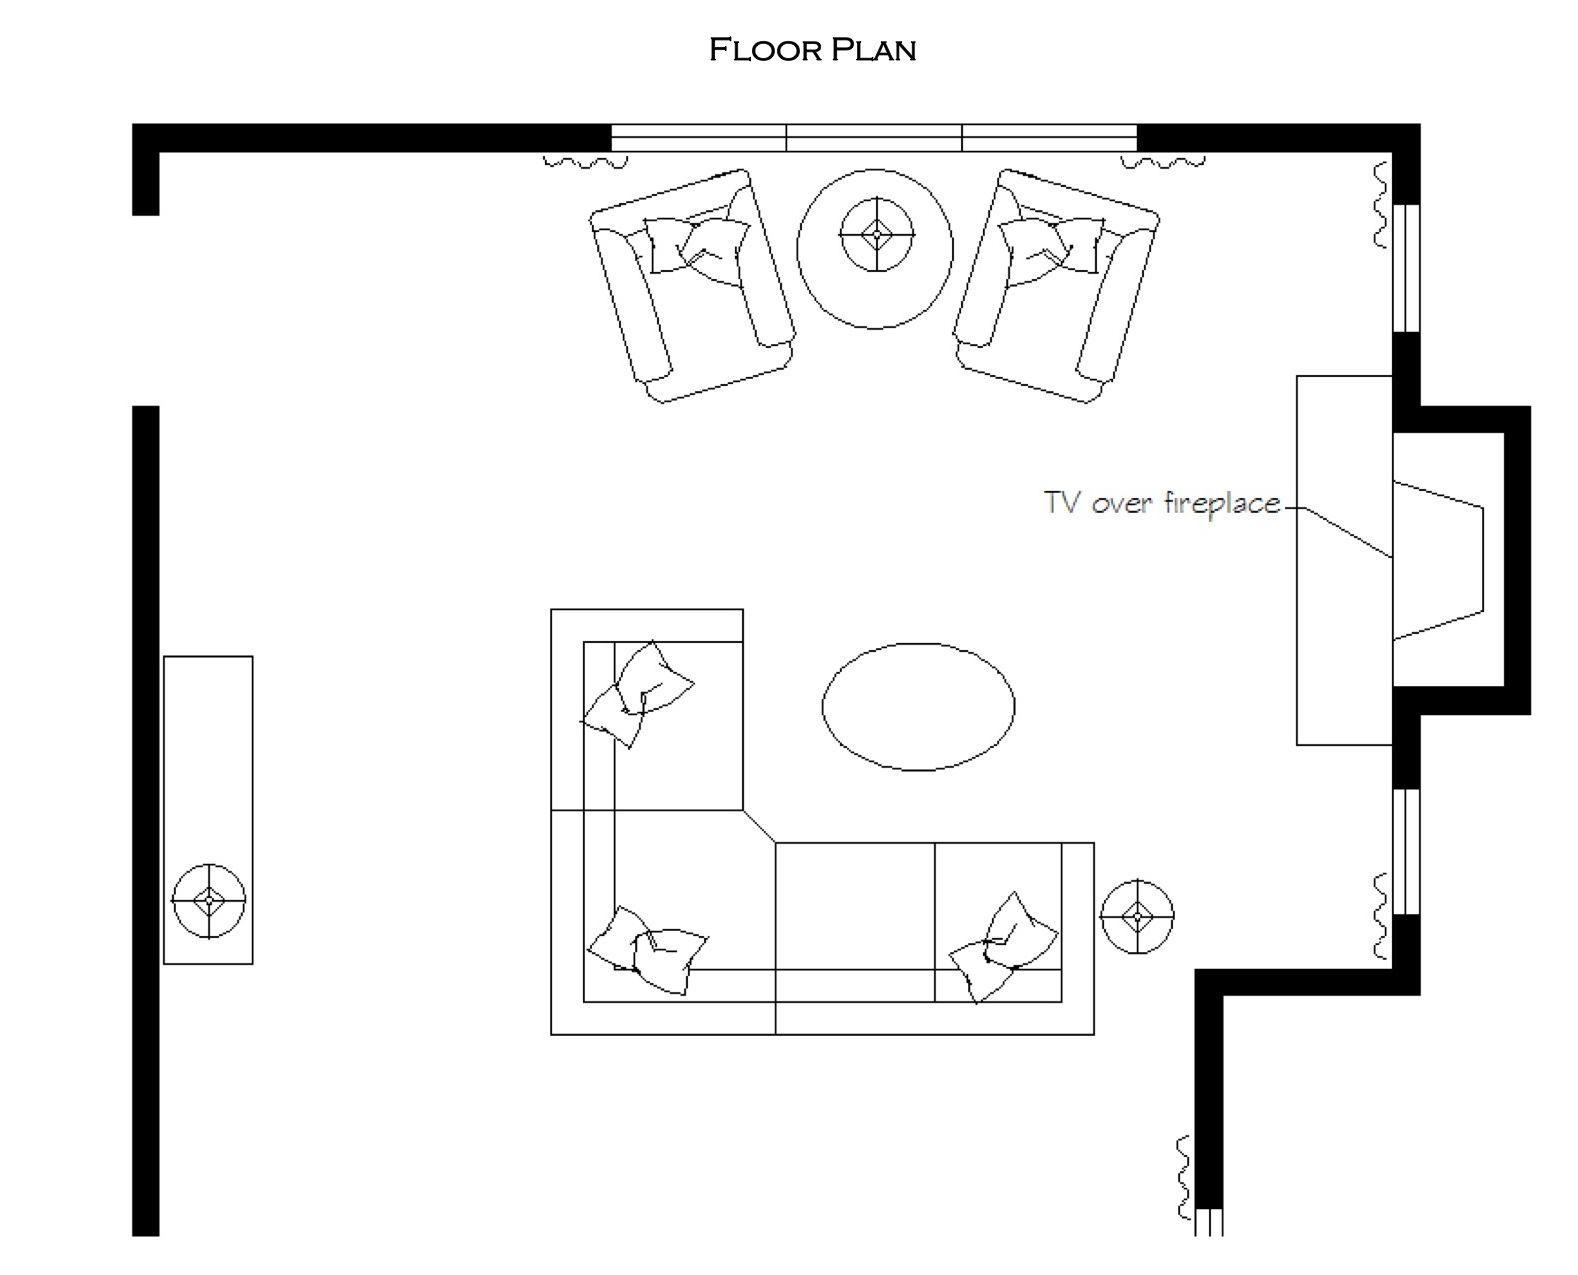 Living room floor plan sectional tv over fireplace for Living room layout